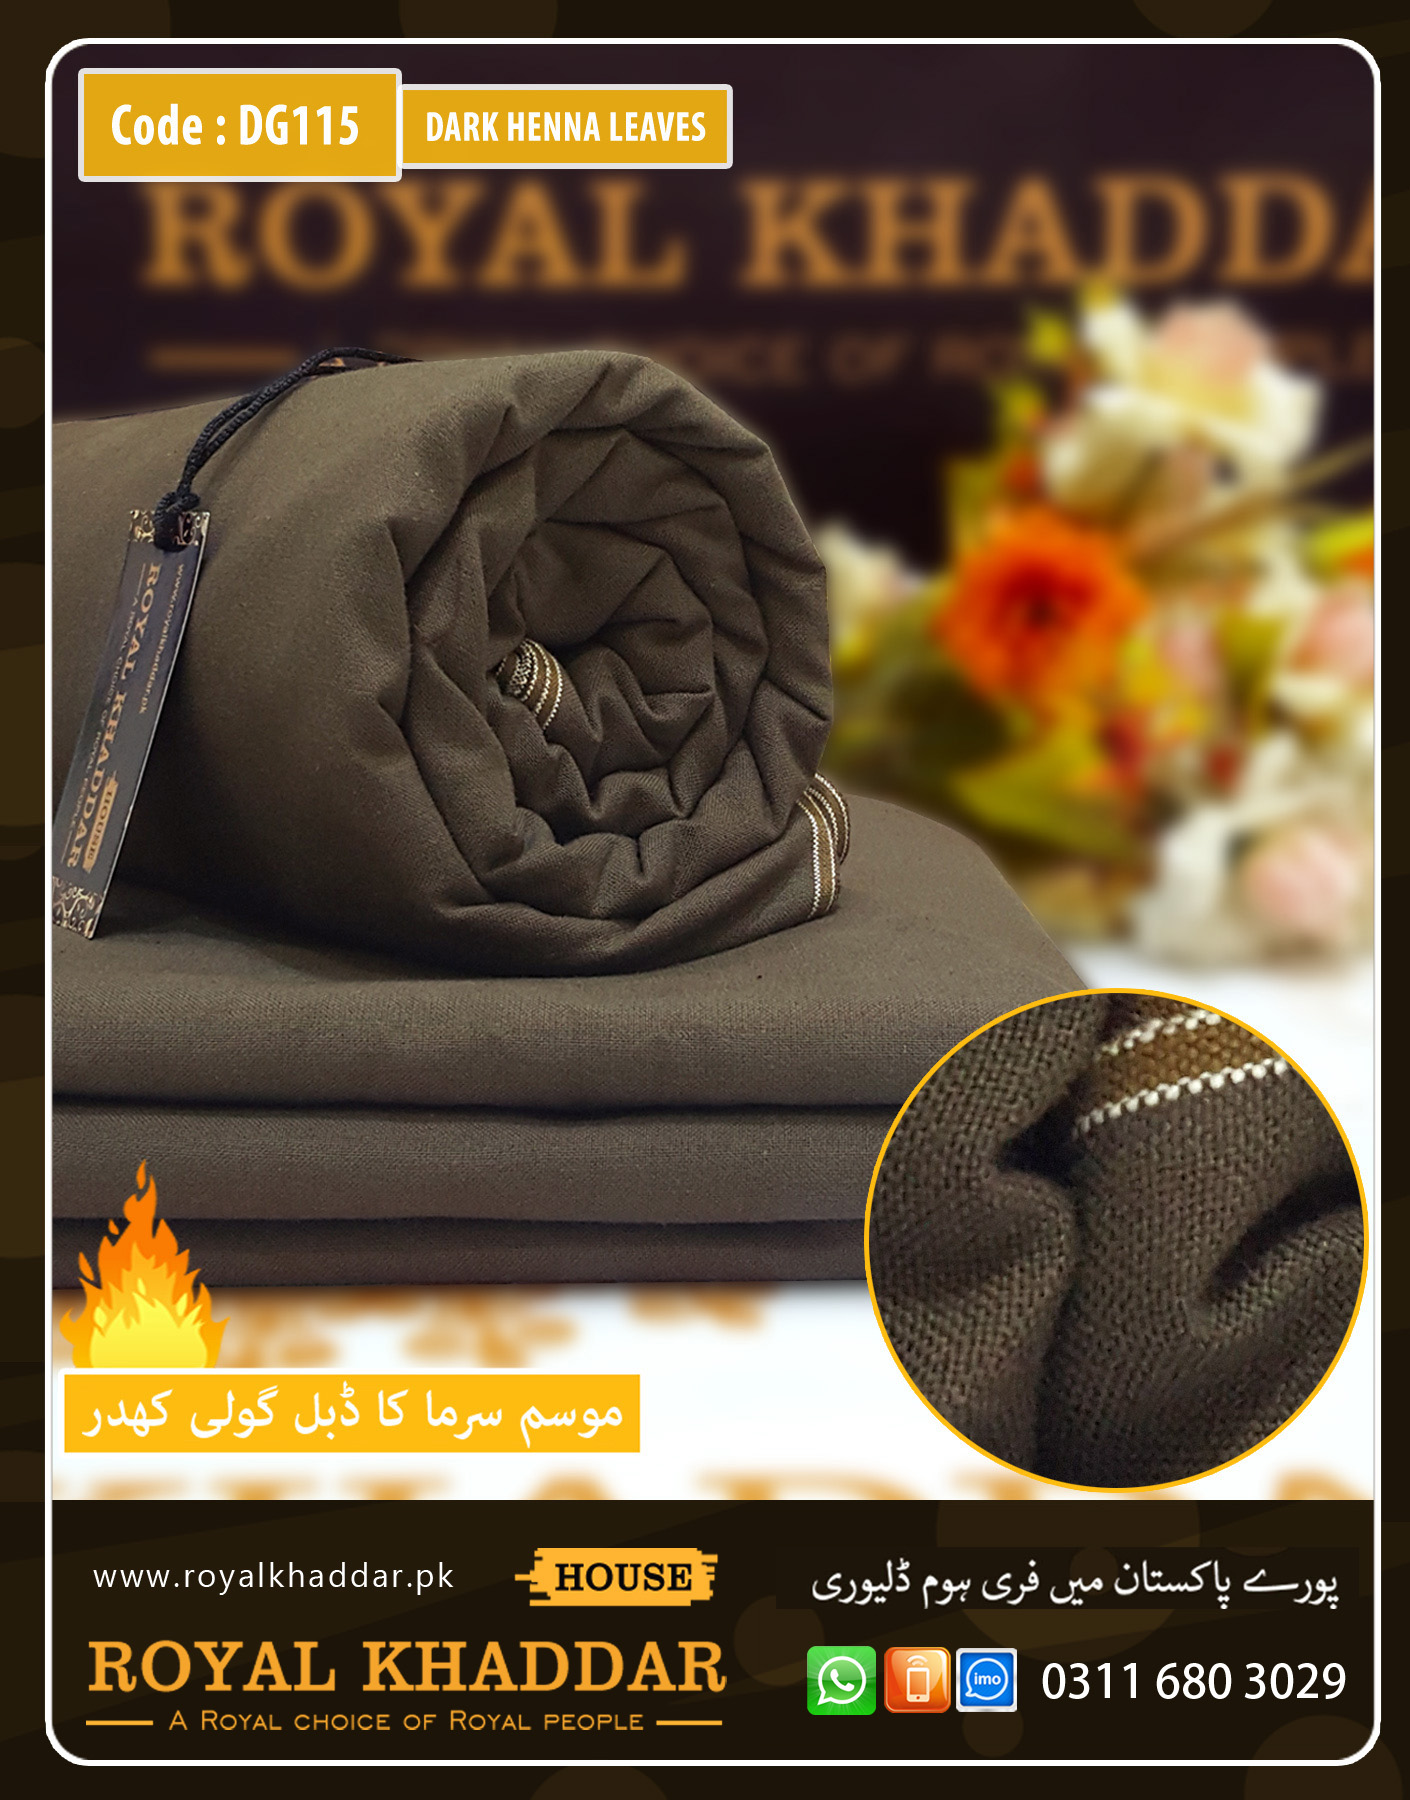 DG115 Dark Henna Leaves Double Goli Winter Khaddar